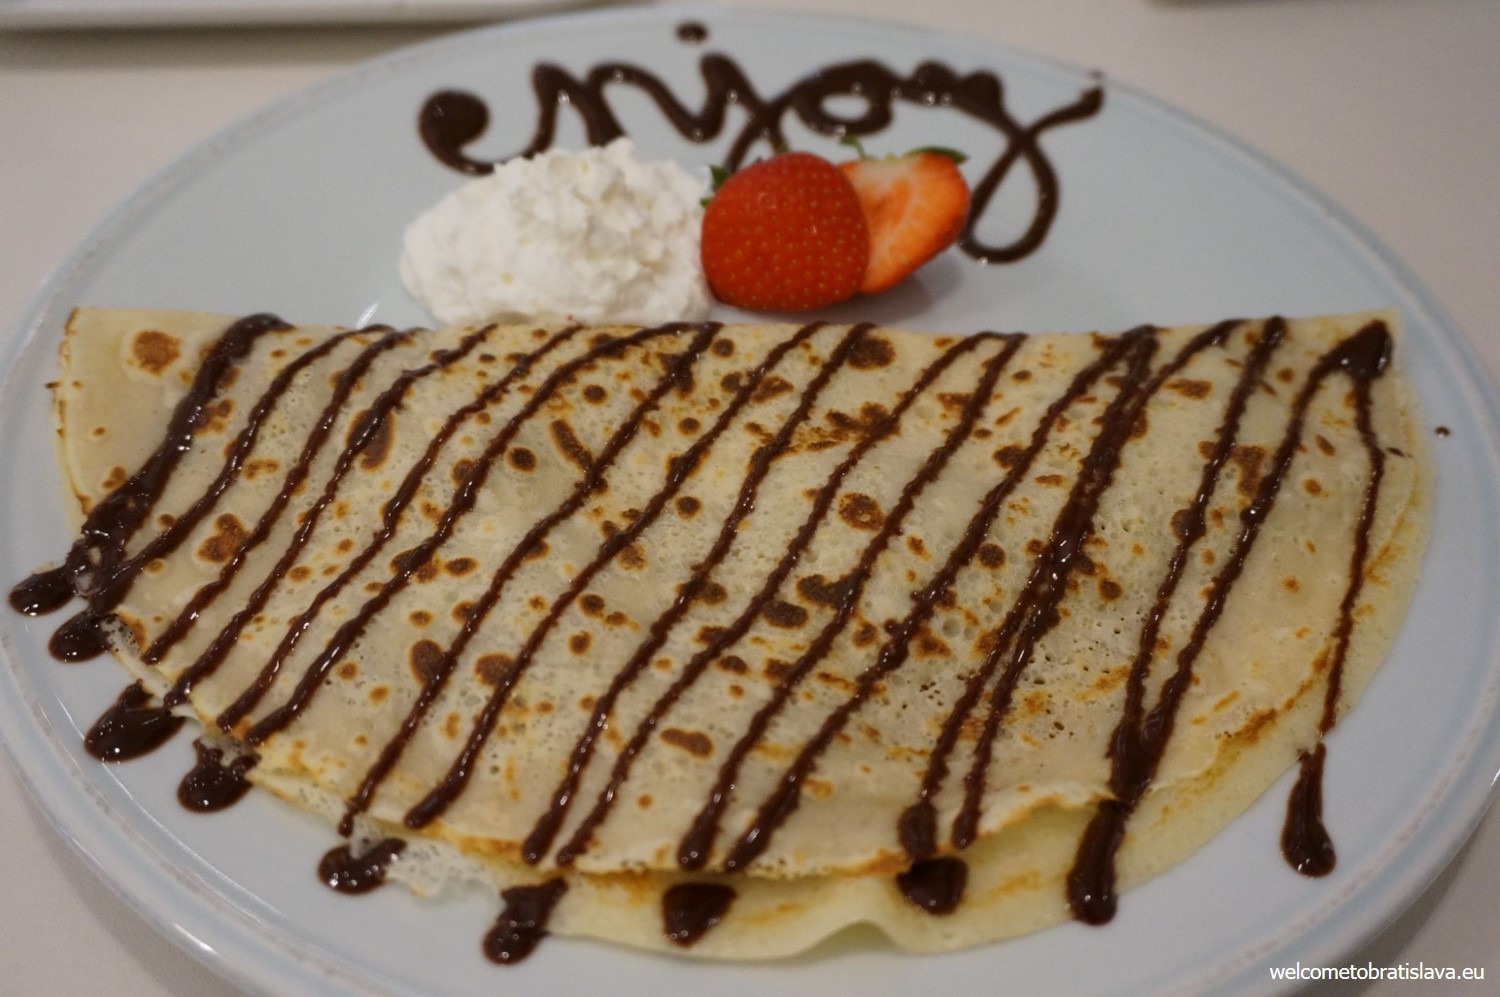 Pancake filled with chestnut puree and whipped cream